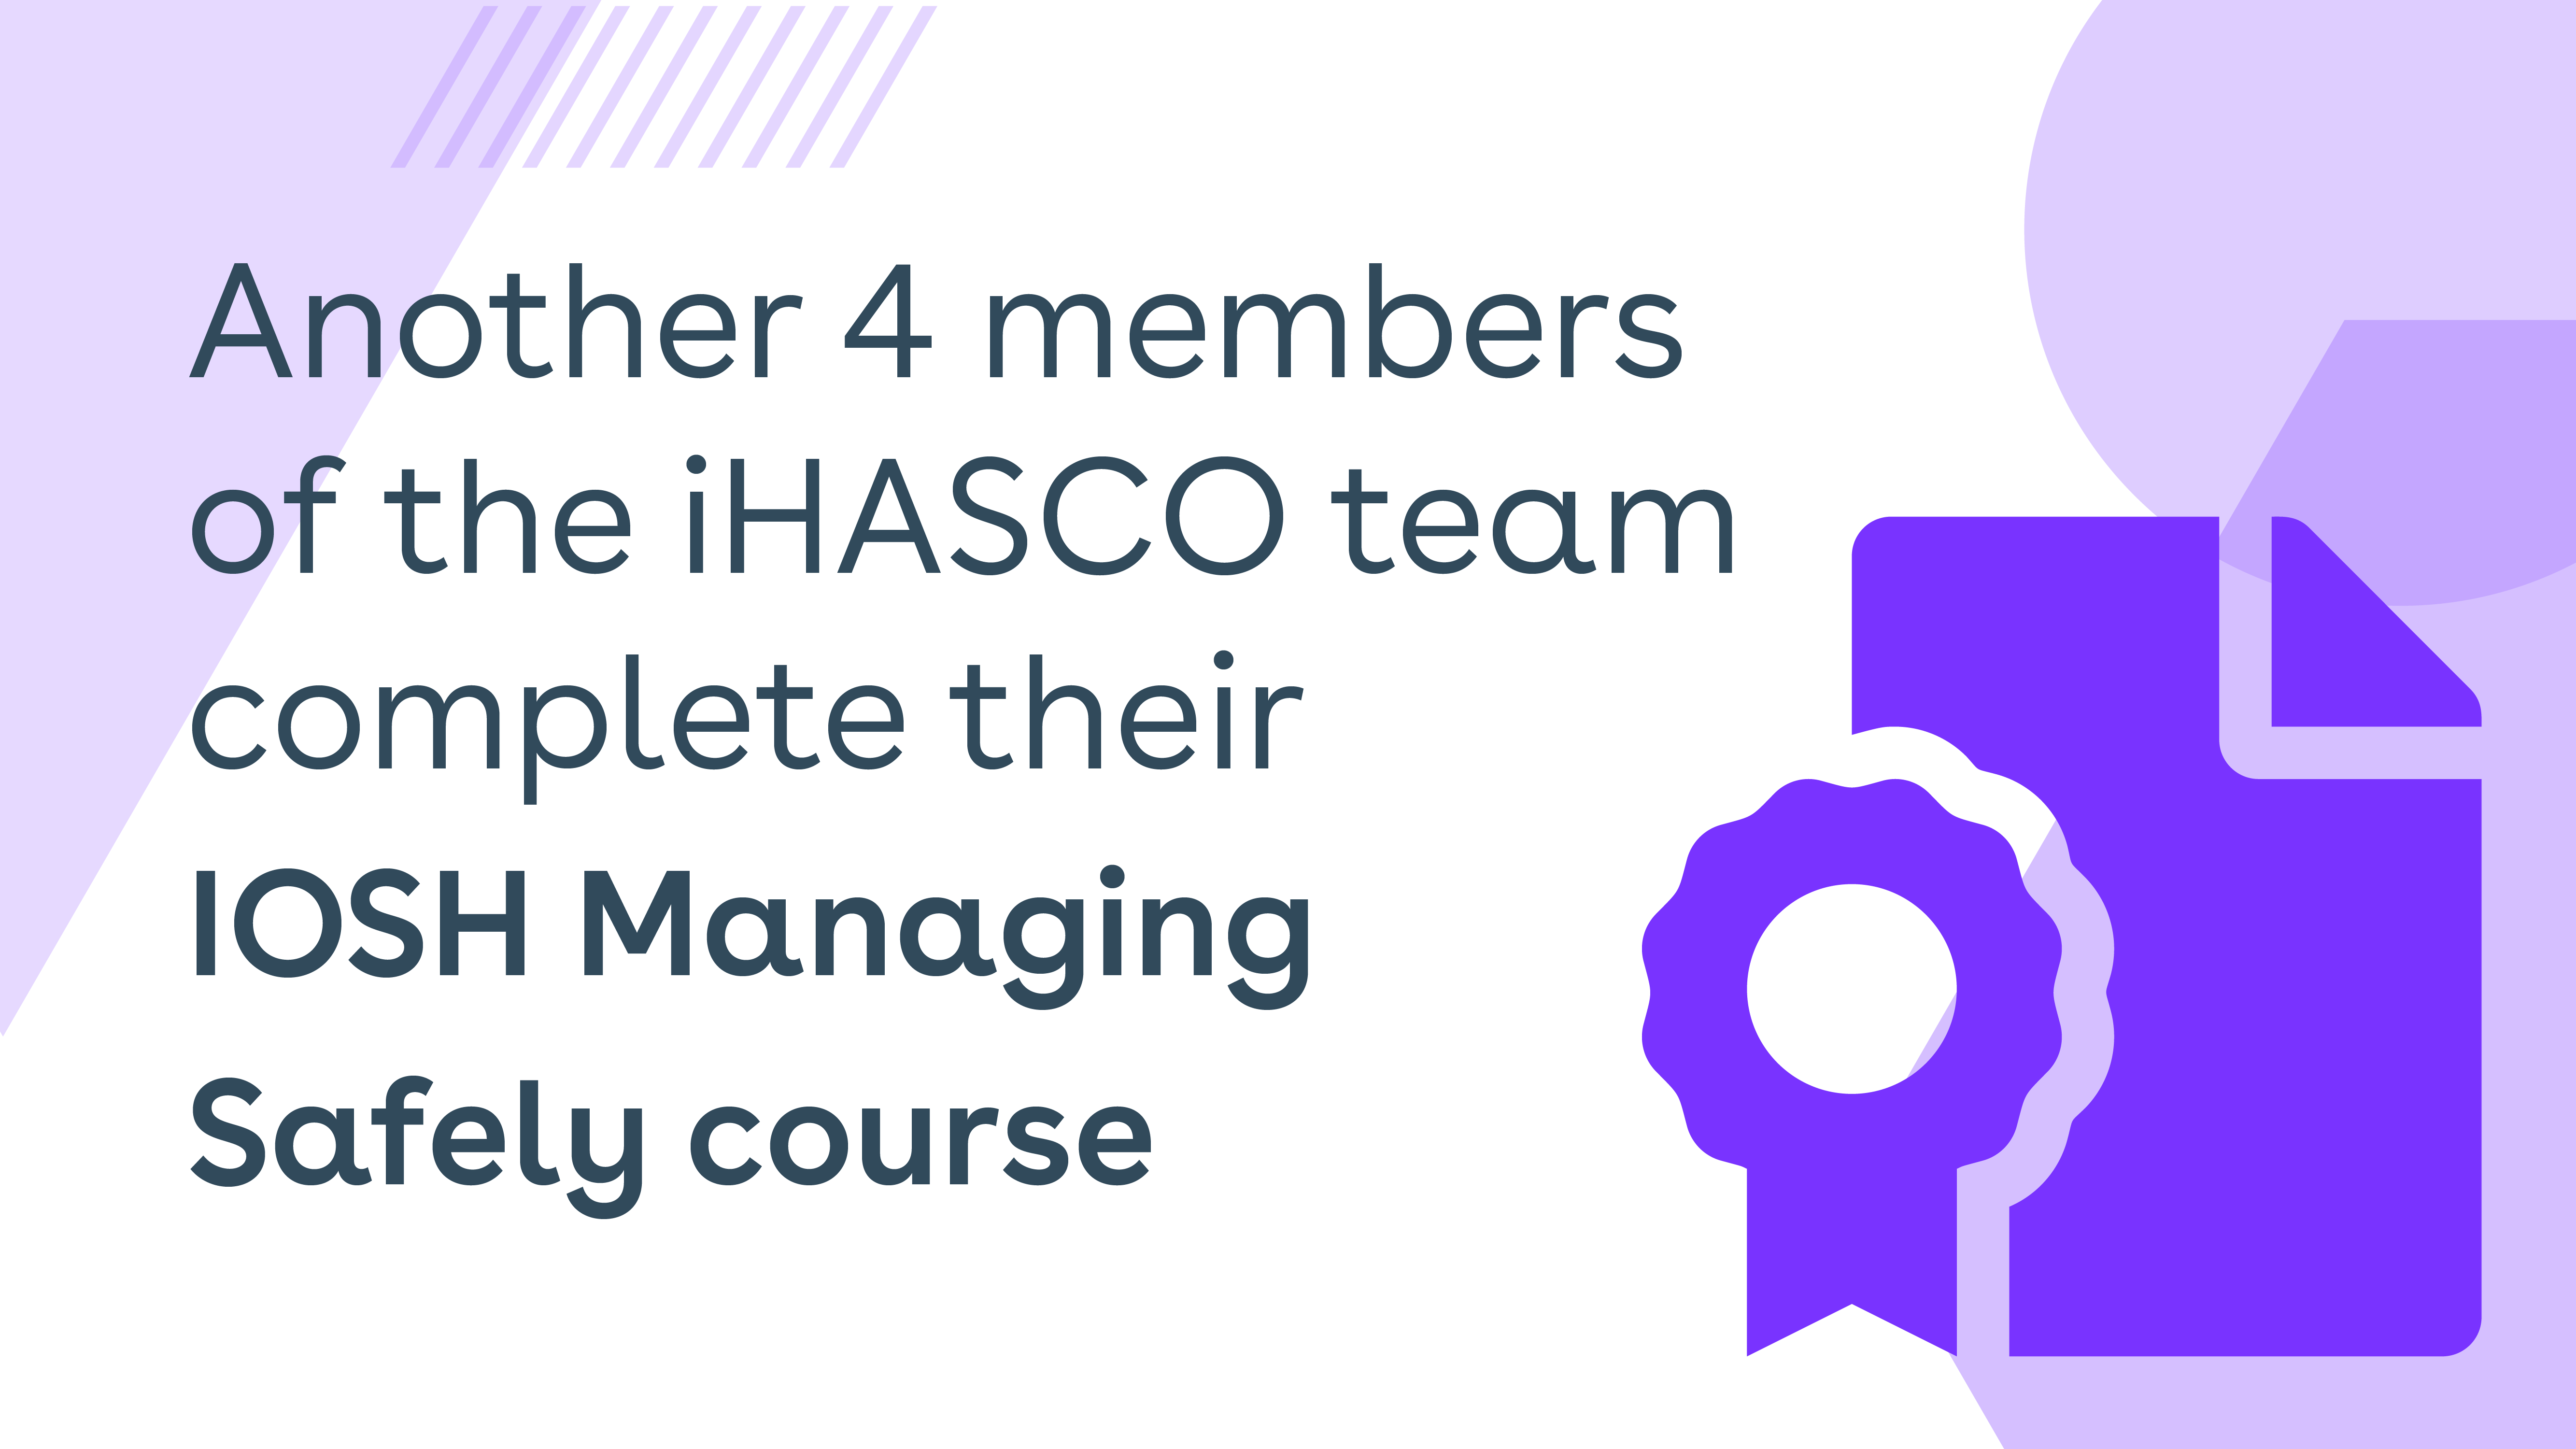 Another 4 members of the iHASCO team complete their IOSH Managing Safely course